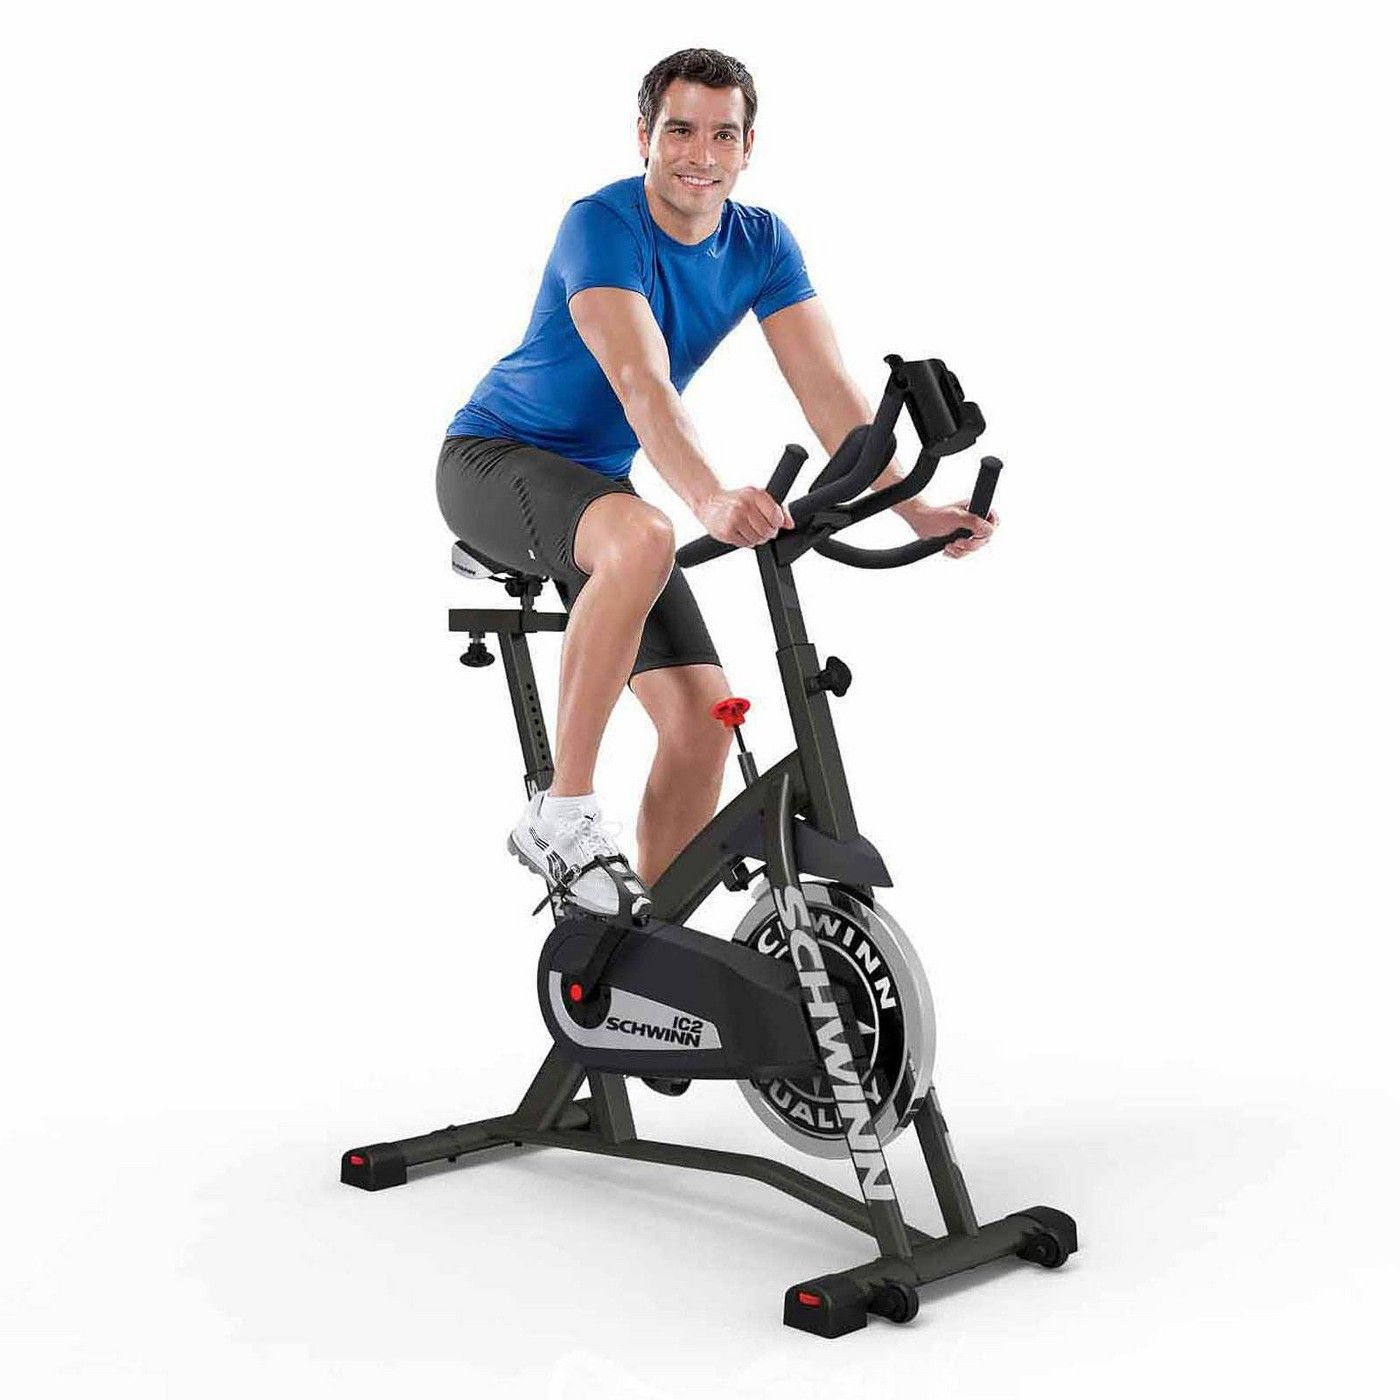 Schwinn Fitness Ic2 Indoor Home Workout Stationary Cycling Trainer Exercise Bike Affiliate Indoor Spon Home Sc In 2020 Indoor Cycling Bike Mountain Bike Shoes Cycling Bikes